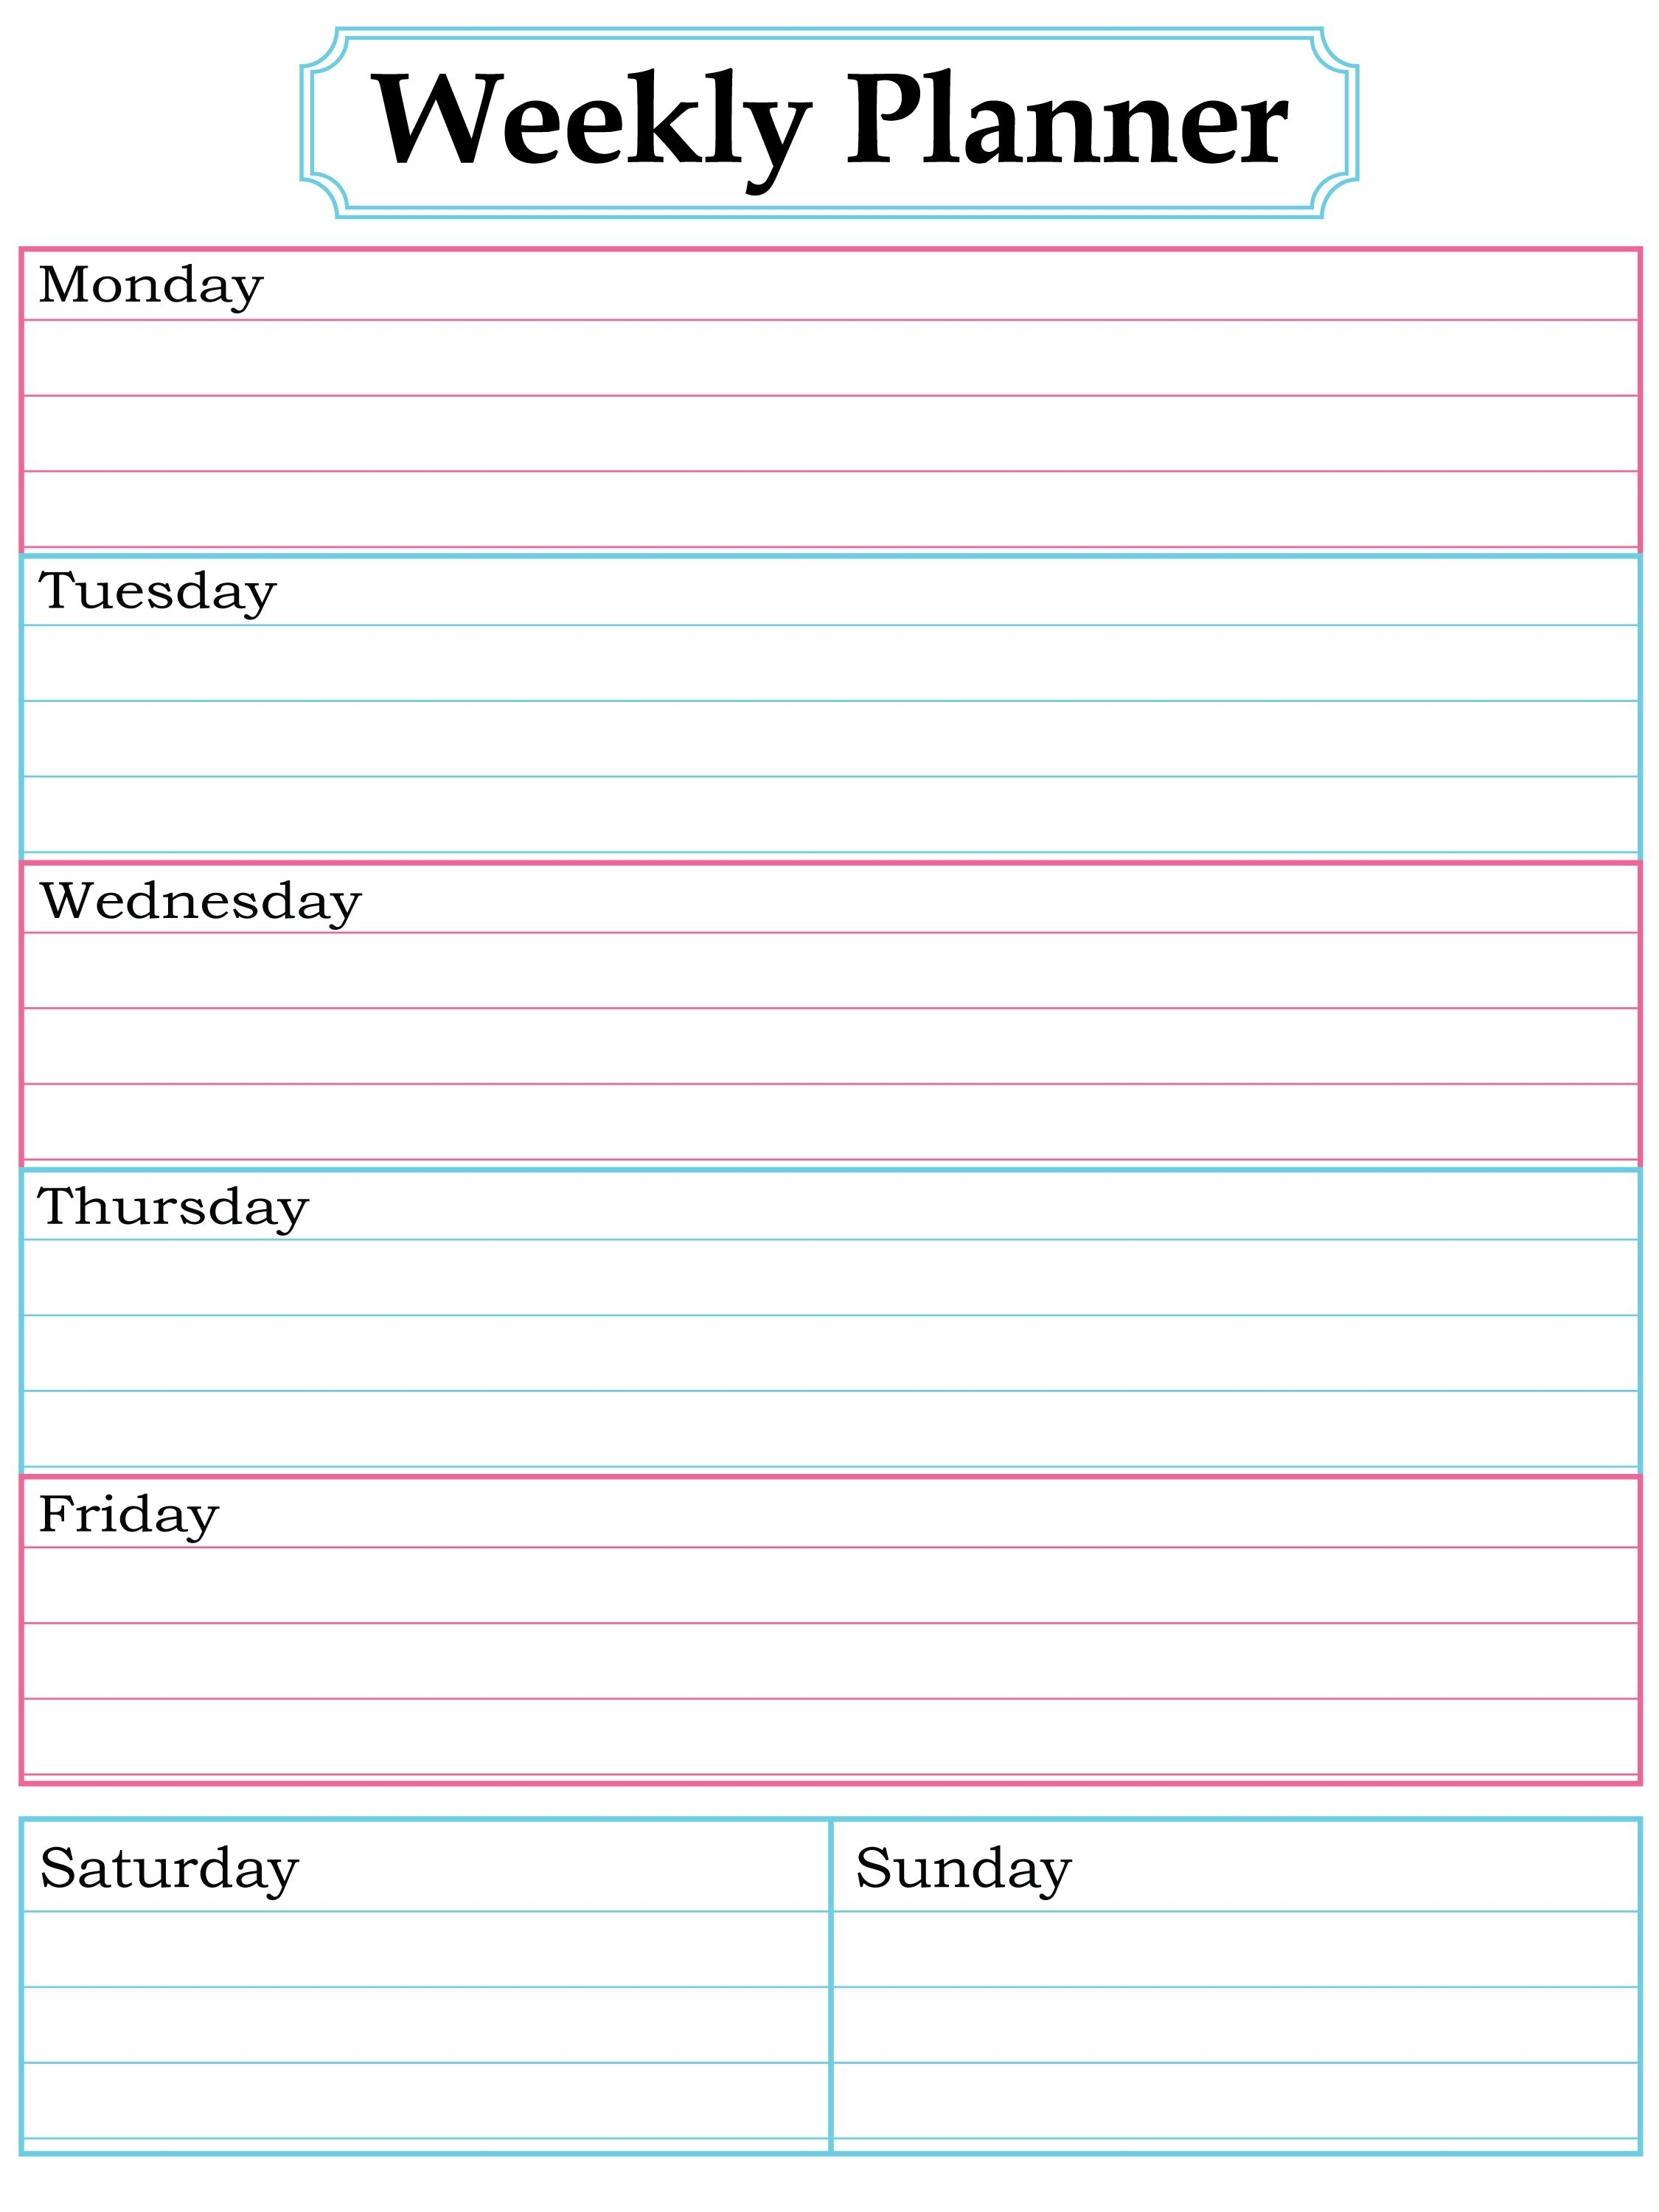 picture regarding Week Planner Printable identified as Totally free Weekly Planner Printable set up Absolutely free printable